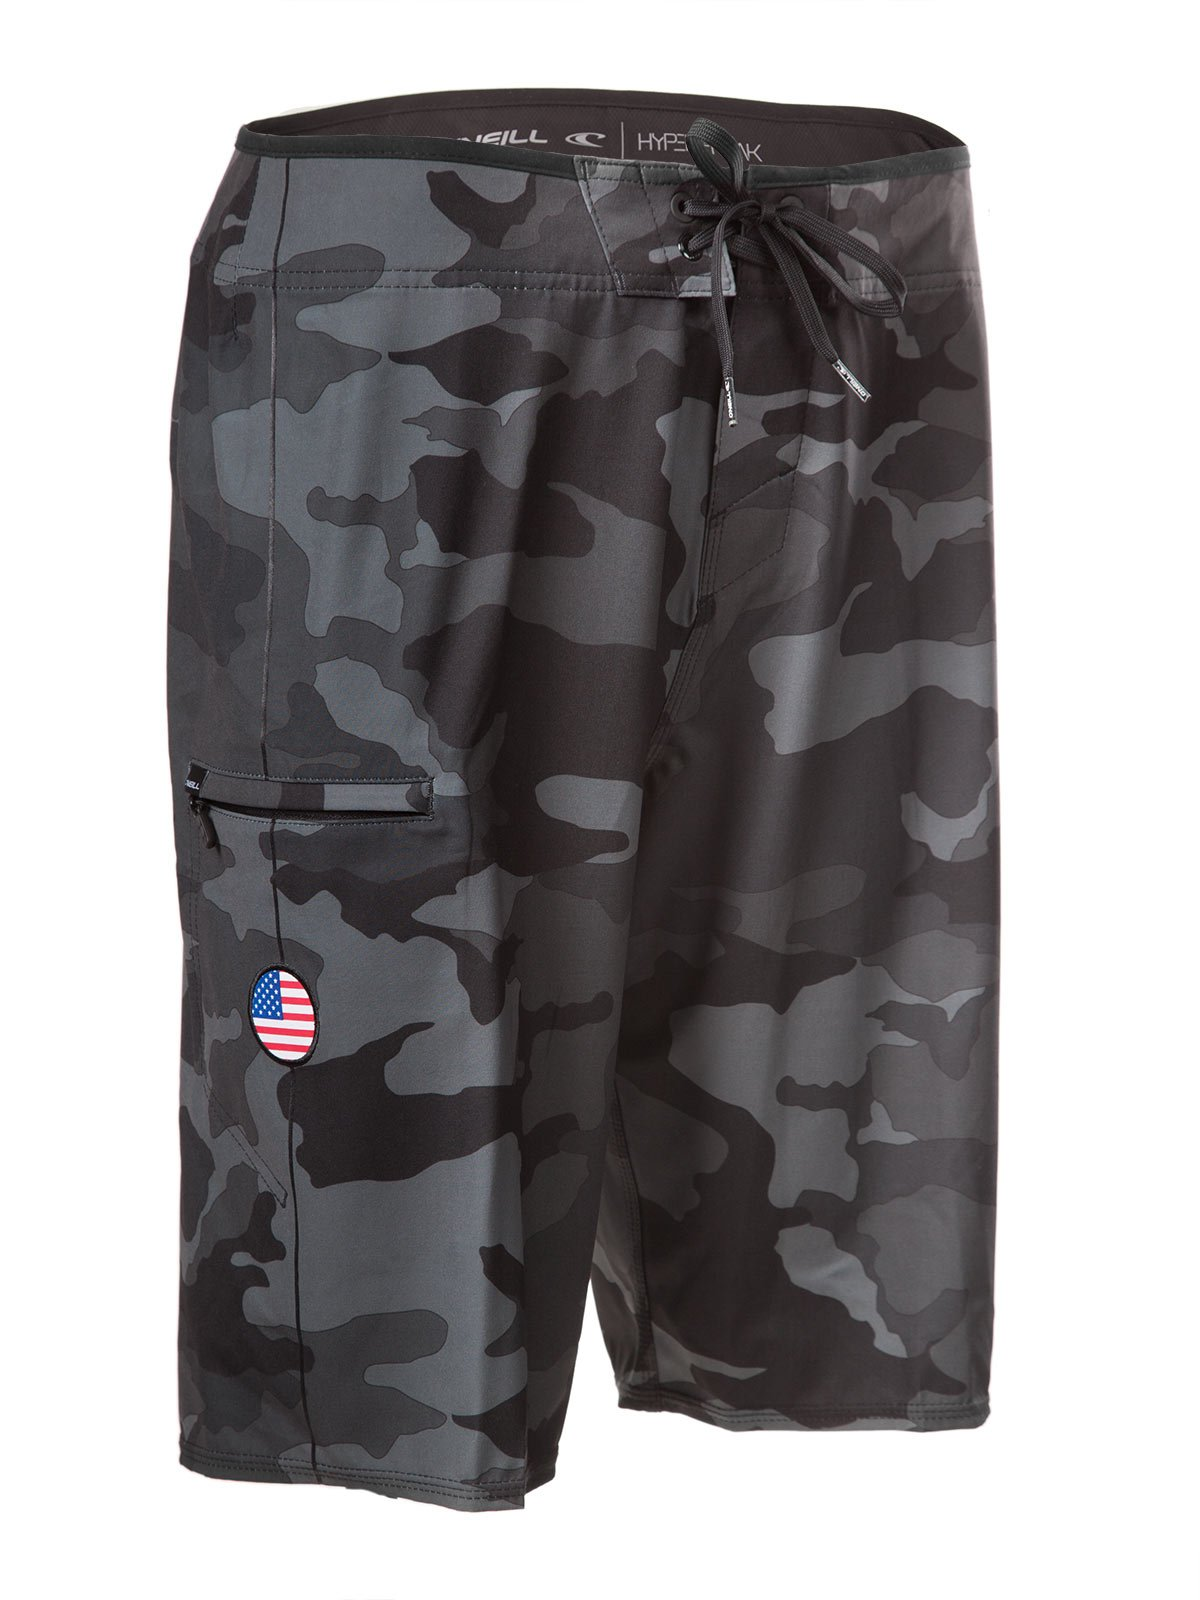 cd27ae83ba O'Neill GI Jack Patriotic Hyperfreak Boardshorts With American Flag Patch